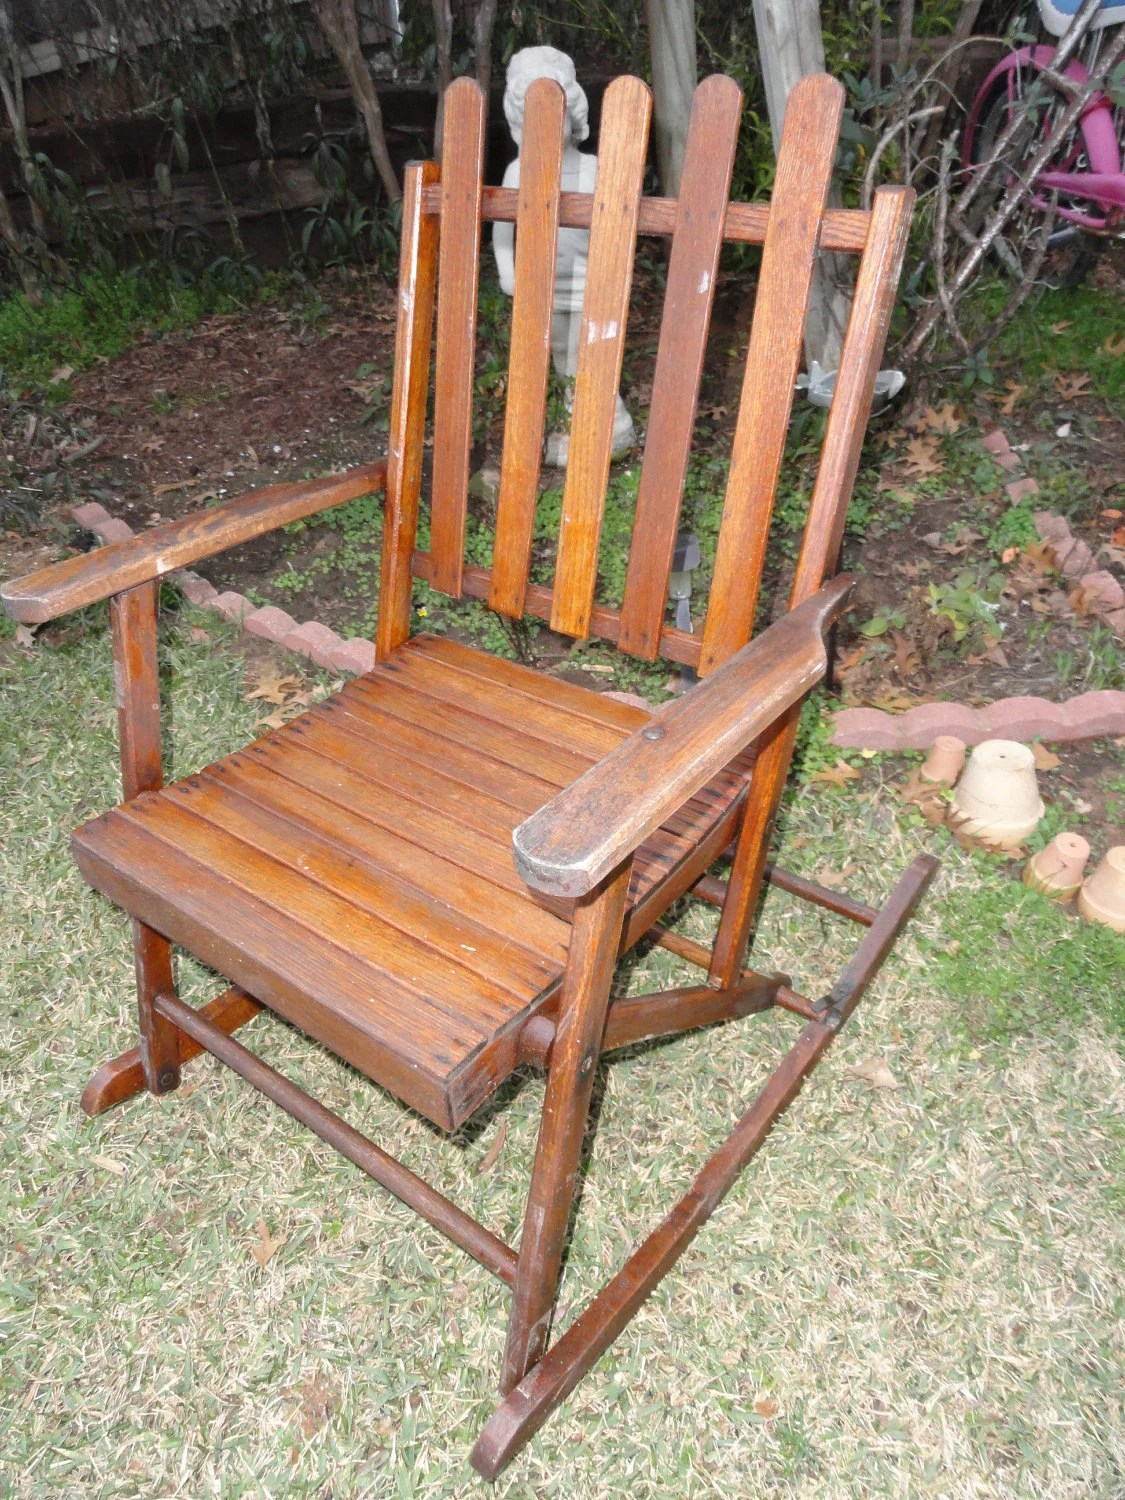 antique folding rocking chair chicco lime green high vintage wood slats 1930s rustic lodge